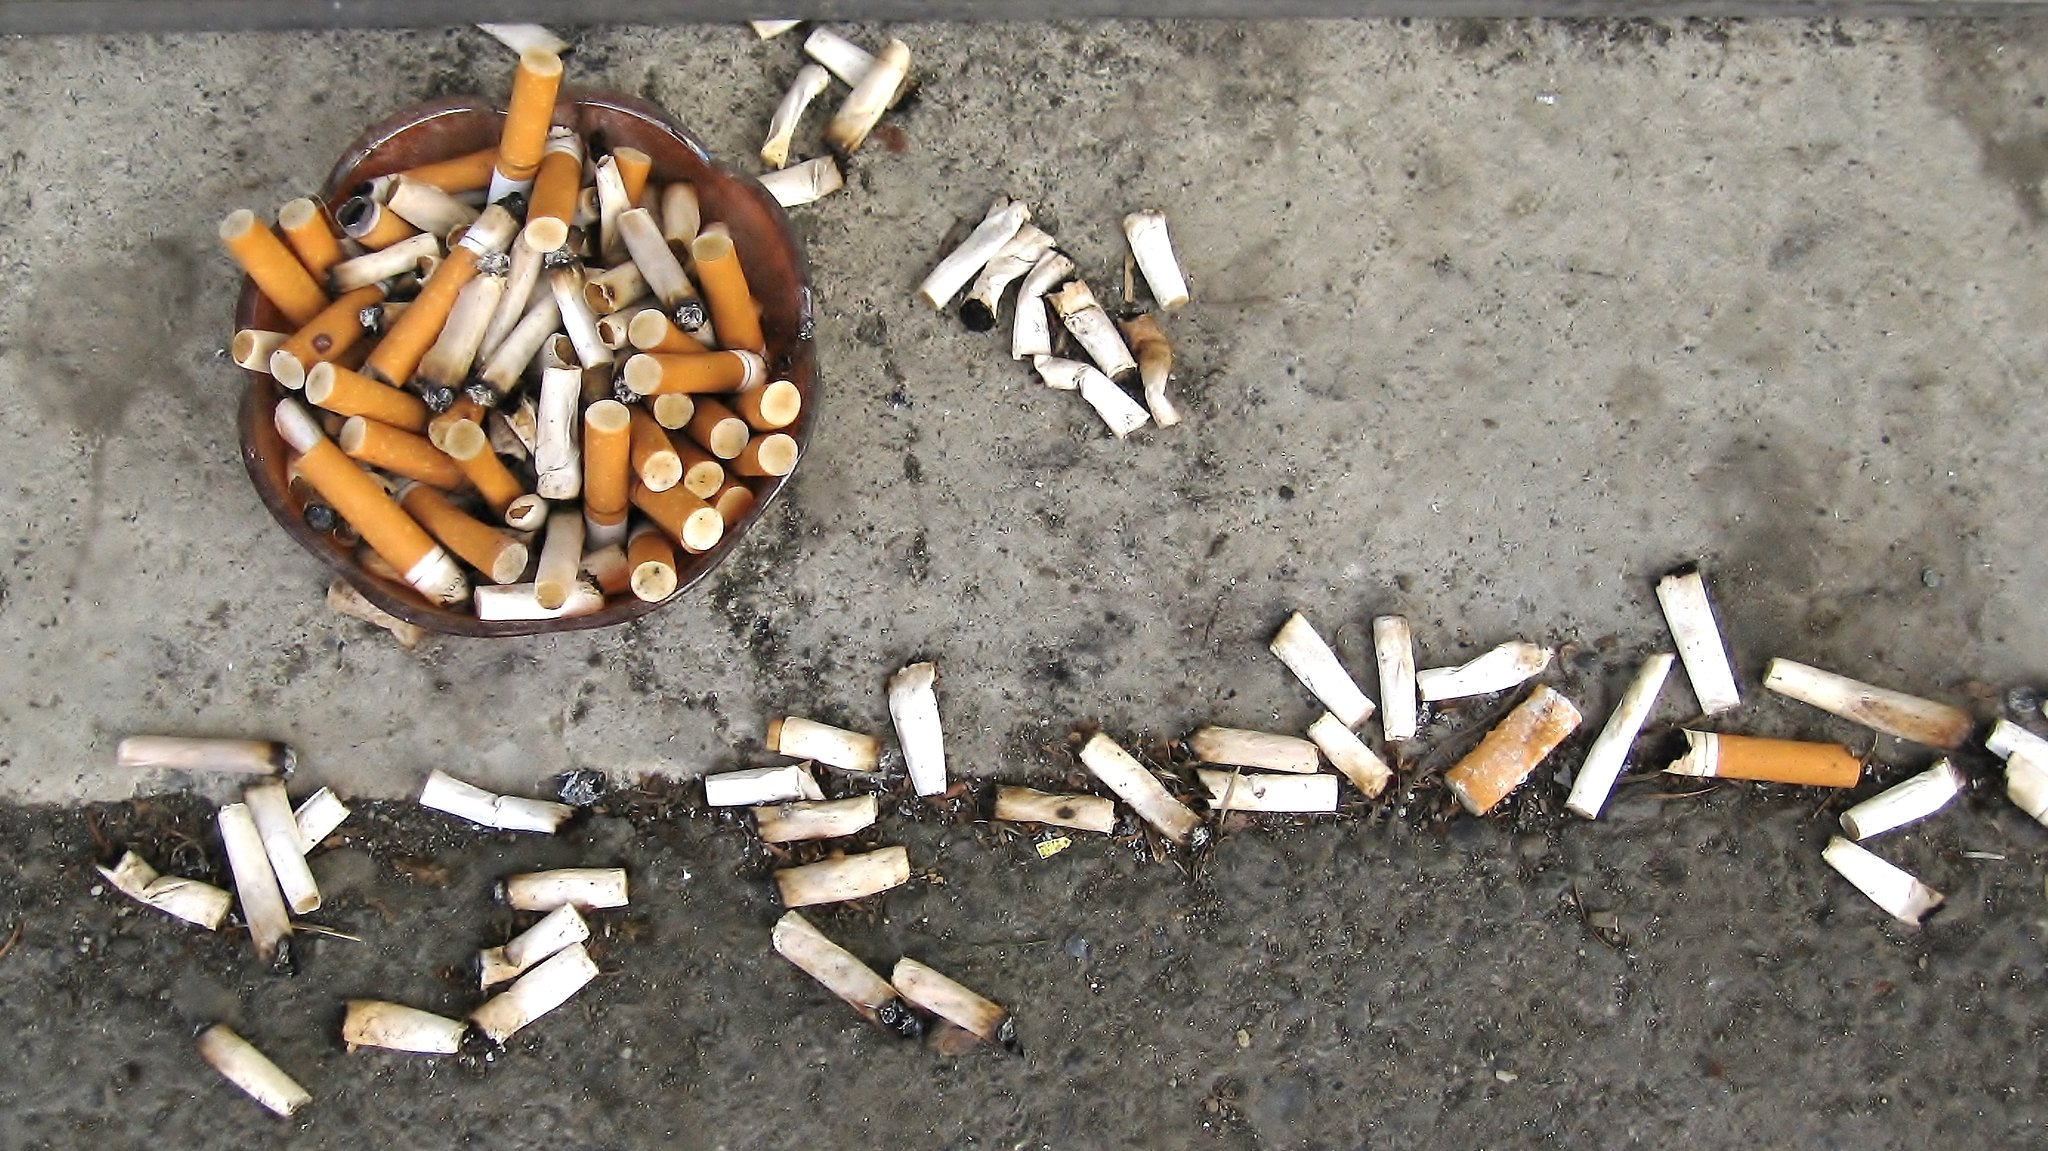 Photograph of cigarette butts on the sidewalk.